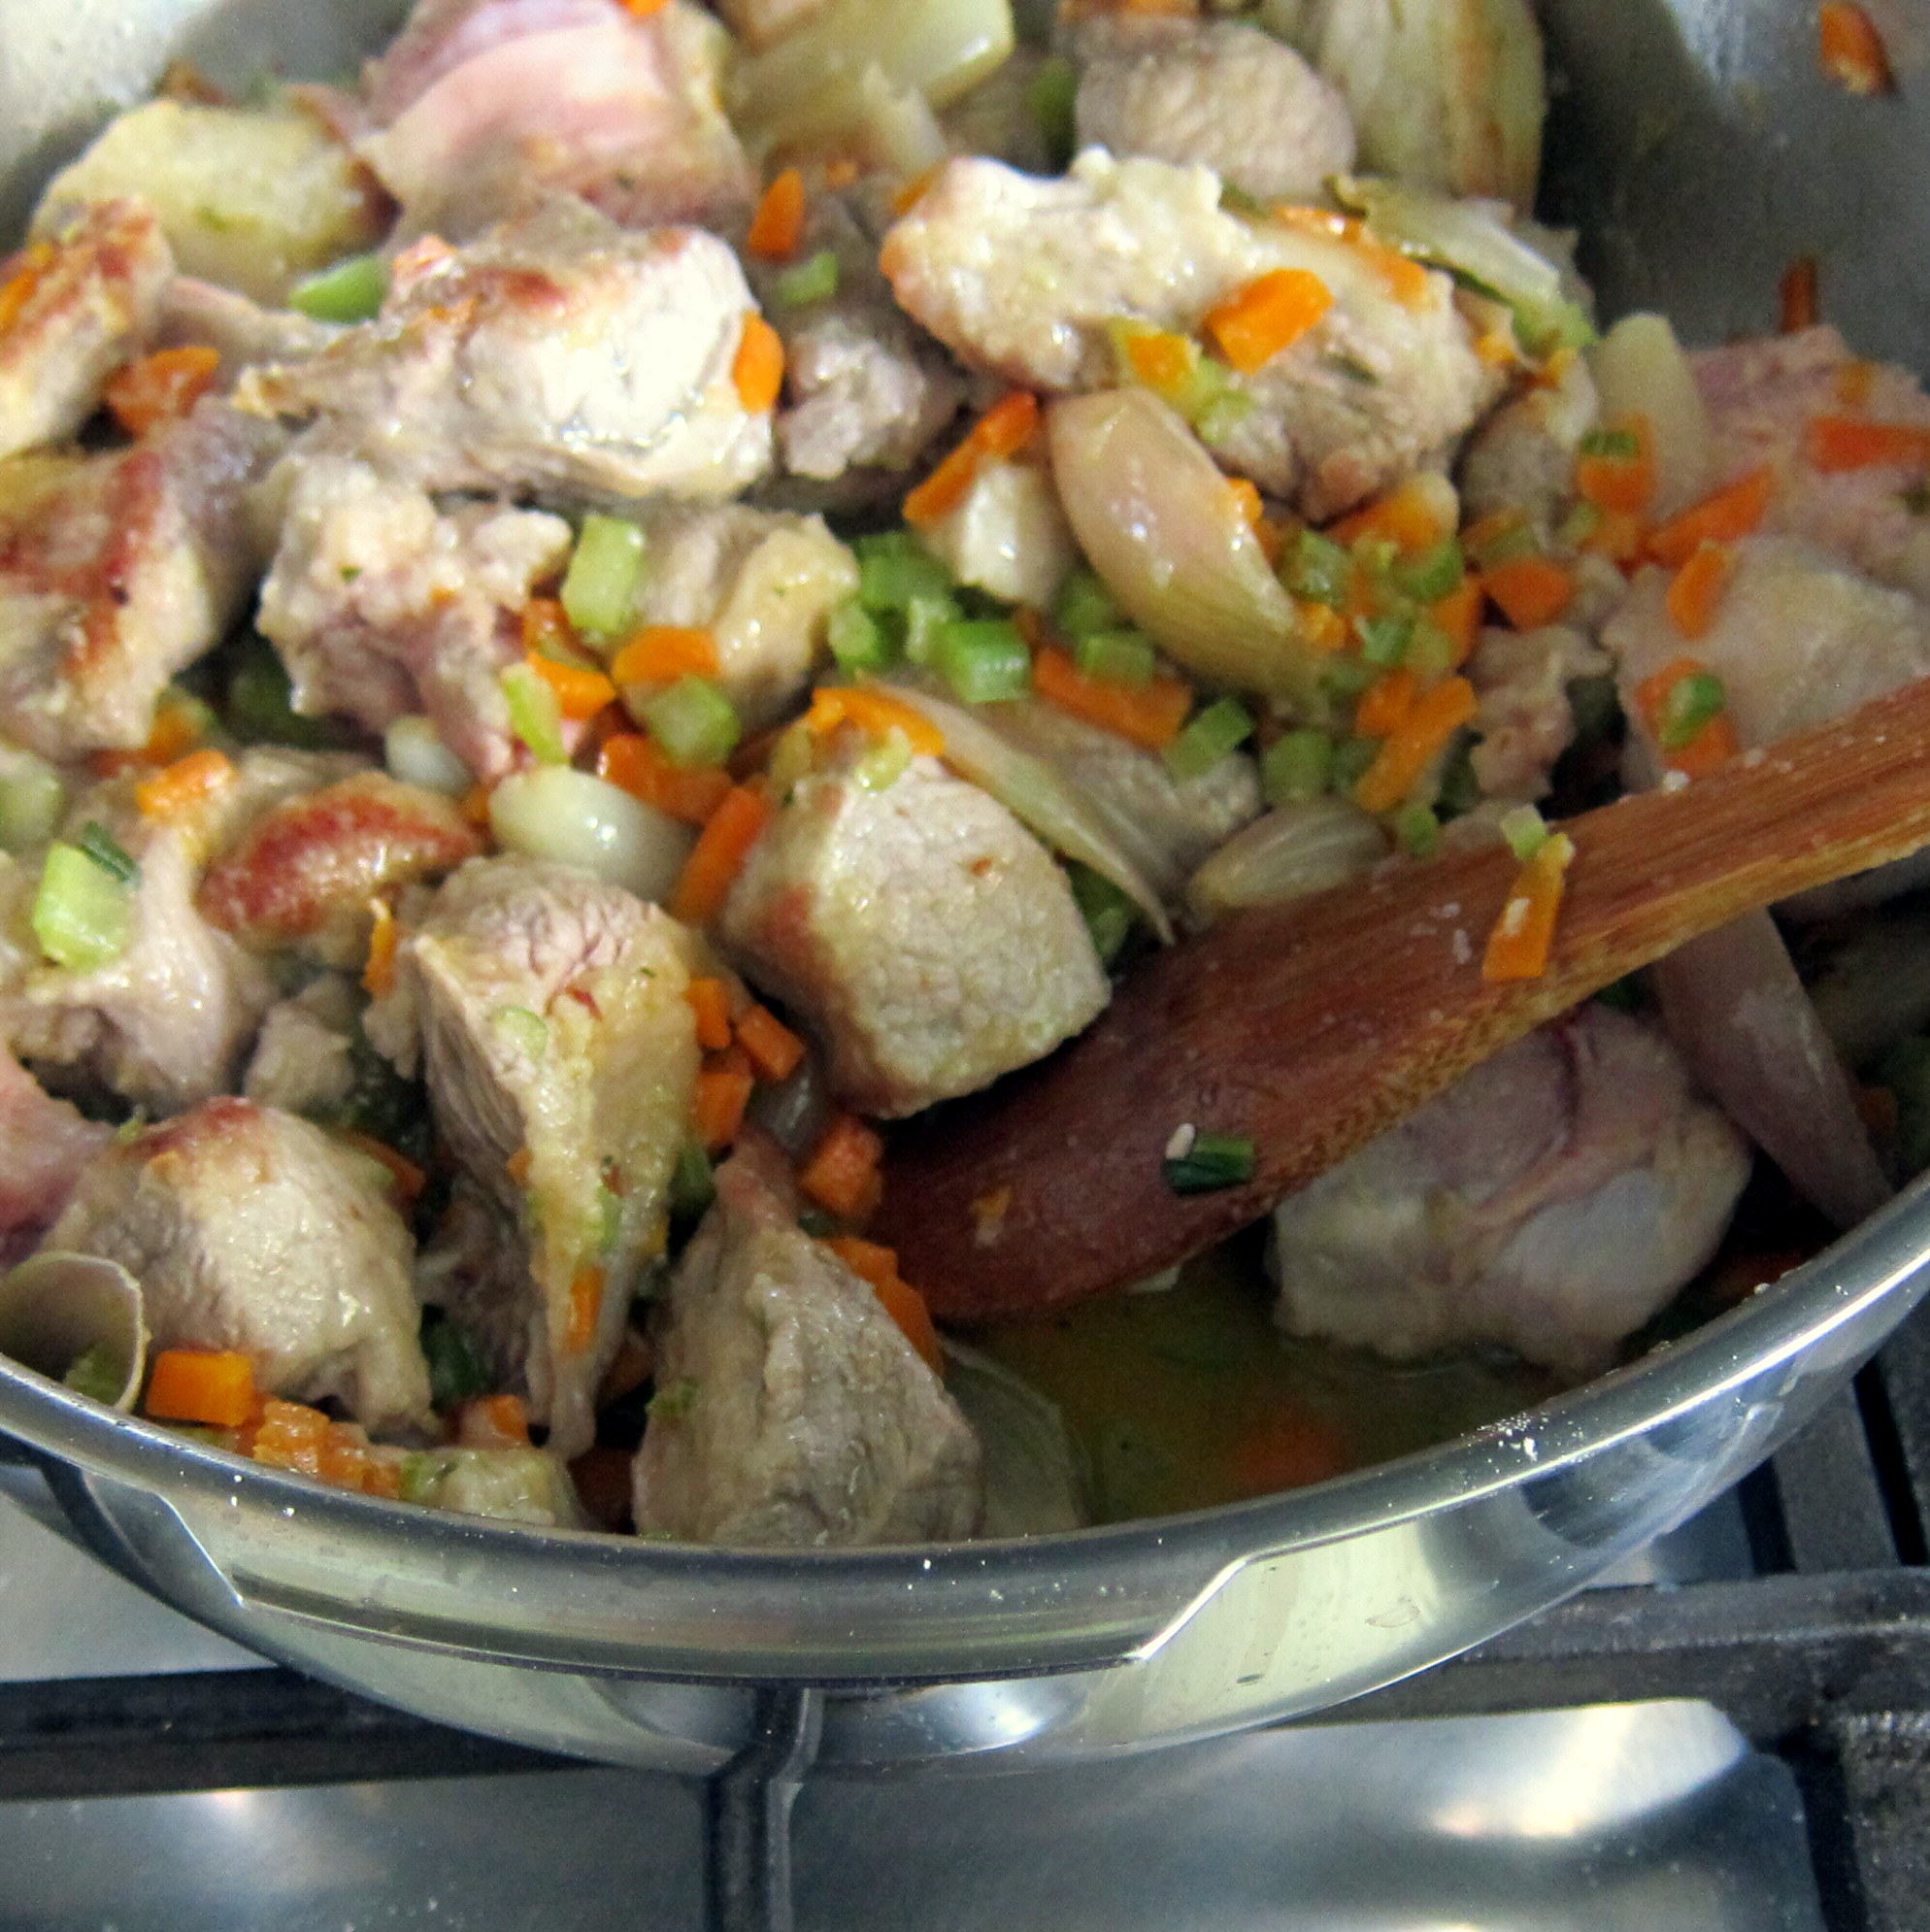 Add wine and simmer until evaporated. Then water to almost cover meat.